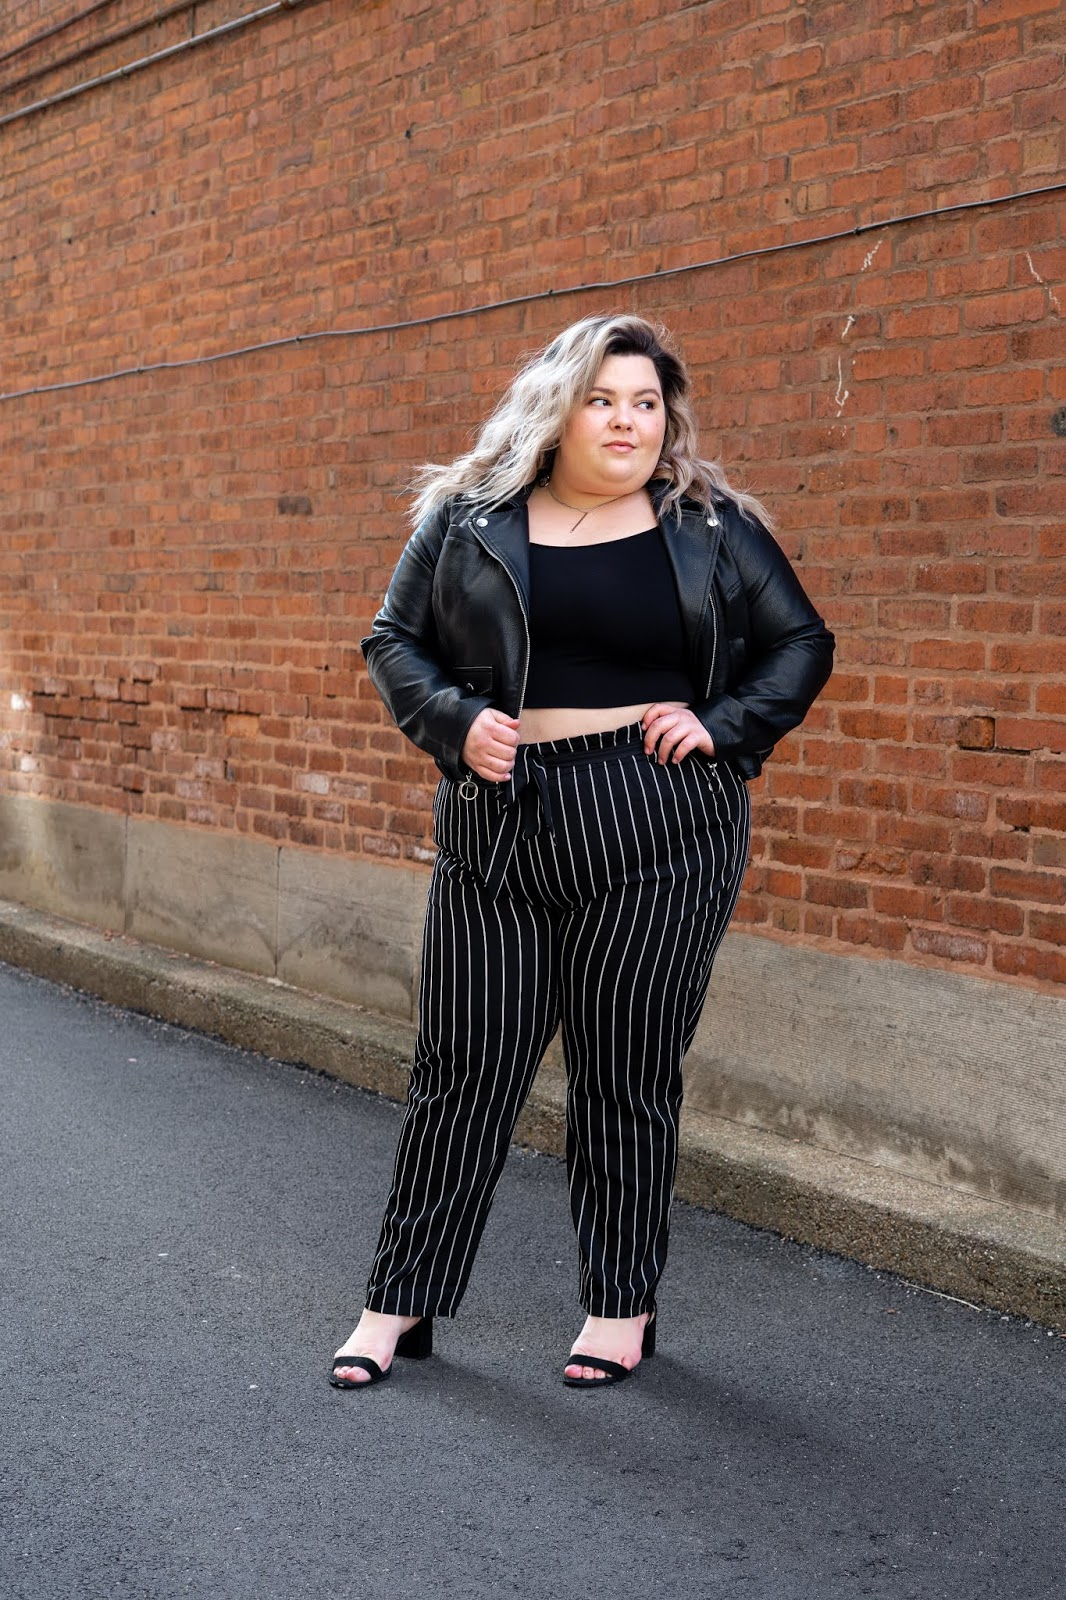 Chicago Plus Size Petite Fashion Blogger, YouTuber, and model Natalie Craig, of Natalie in the City, reviews Fashion Nova's paper bag waist pants and cropped tops.